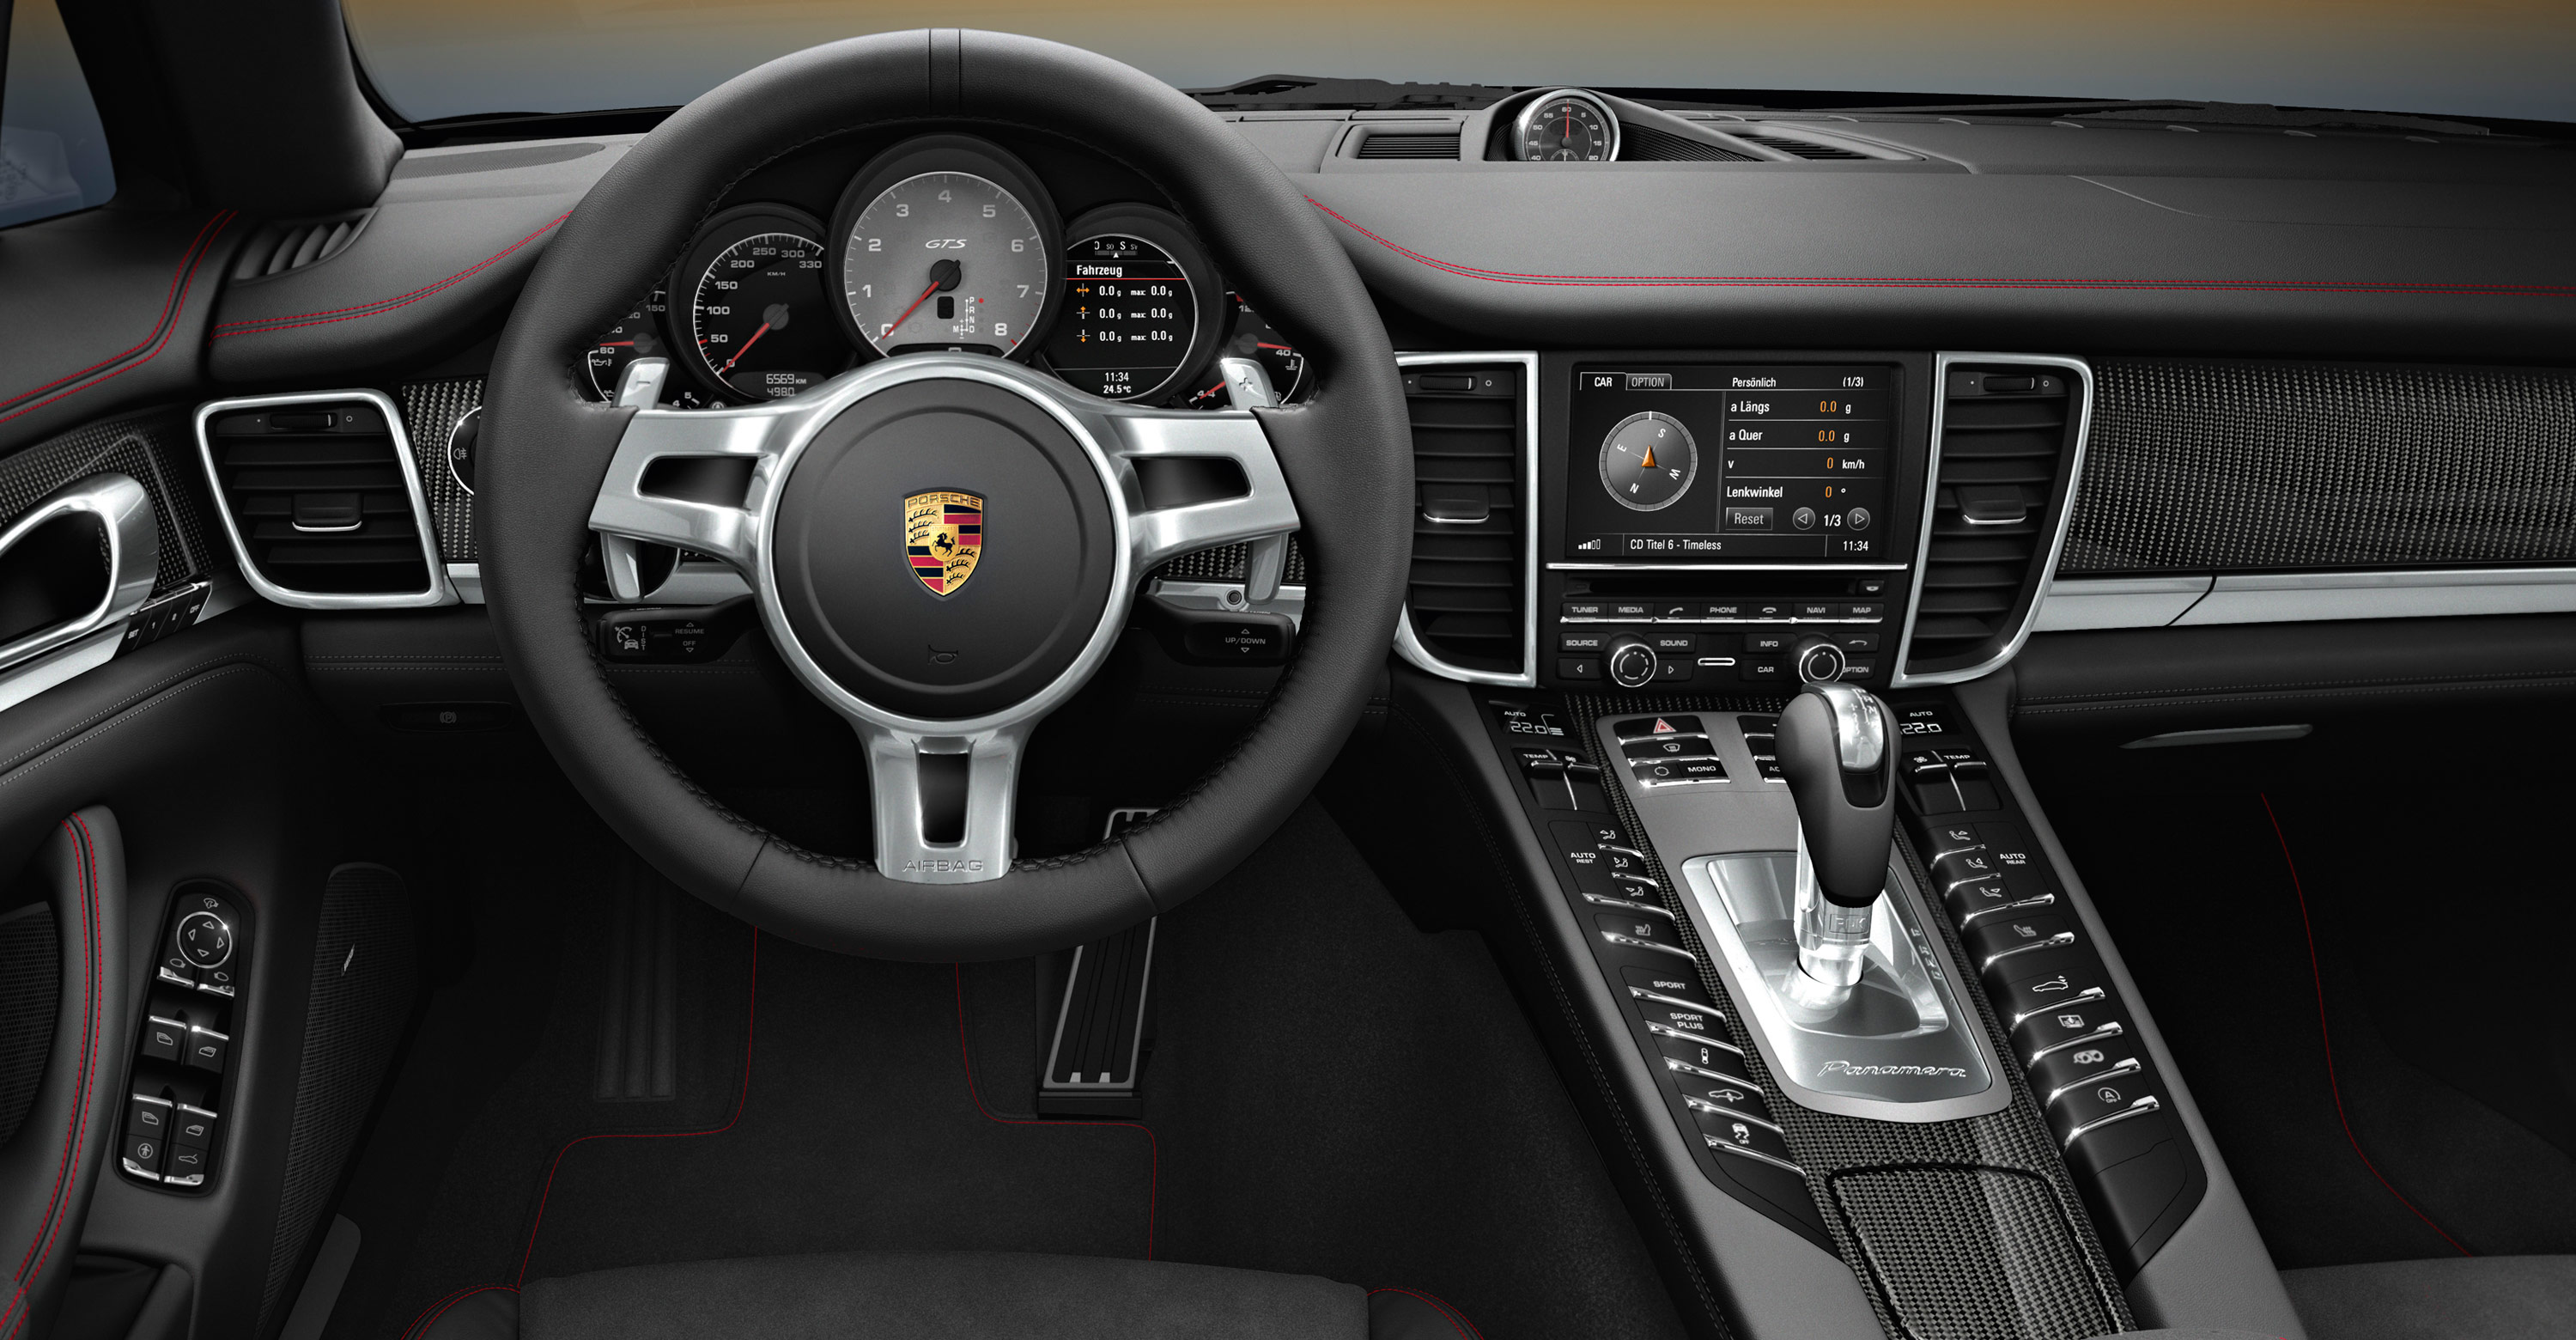 2012 Porsche Panamera GTS | Top Speed. »